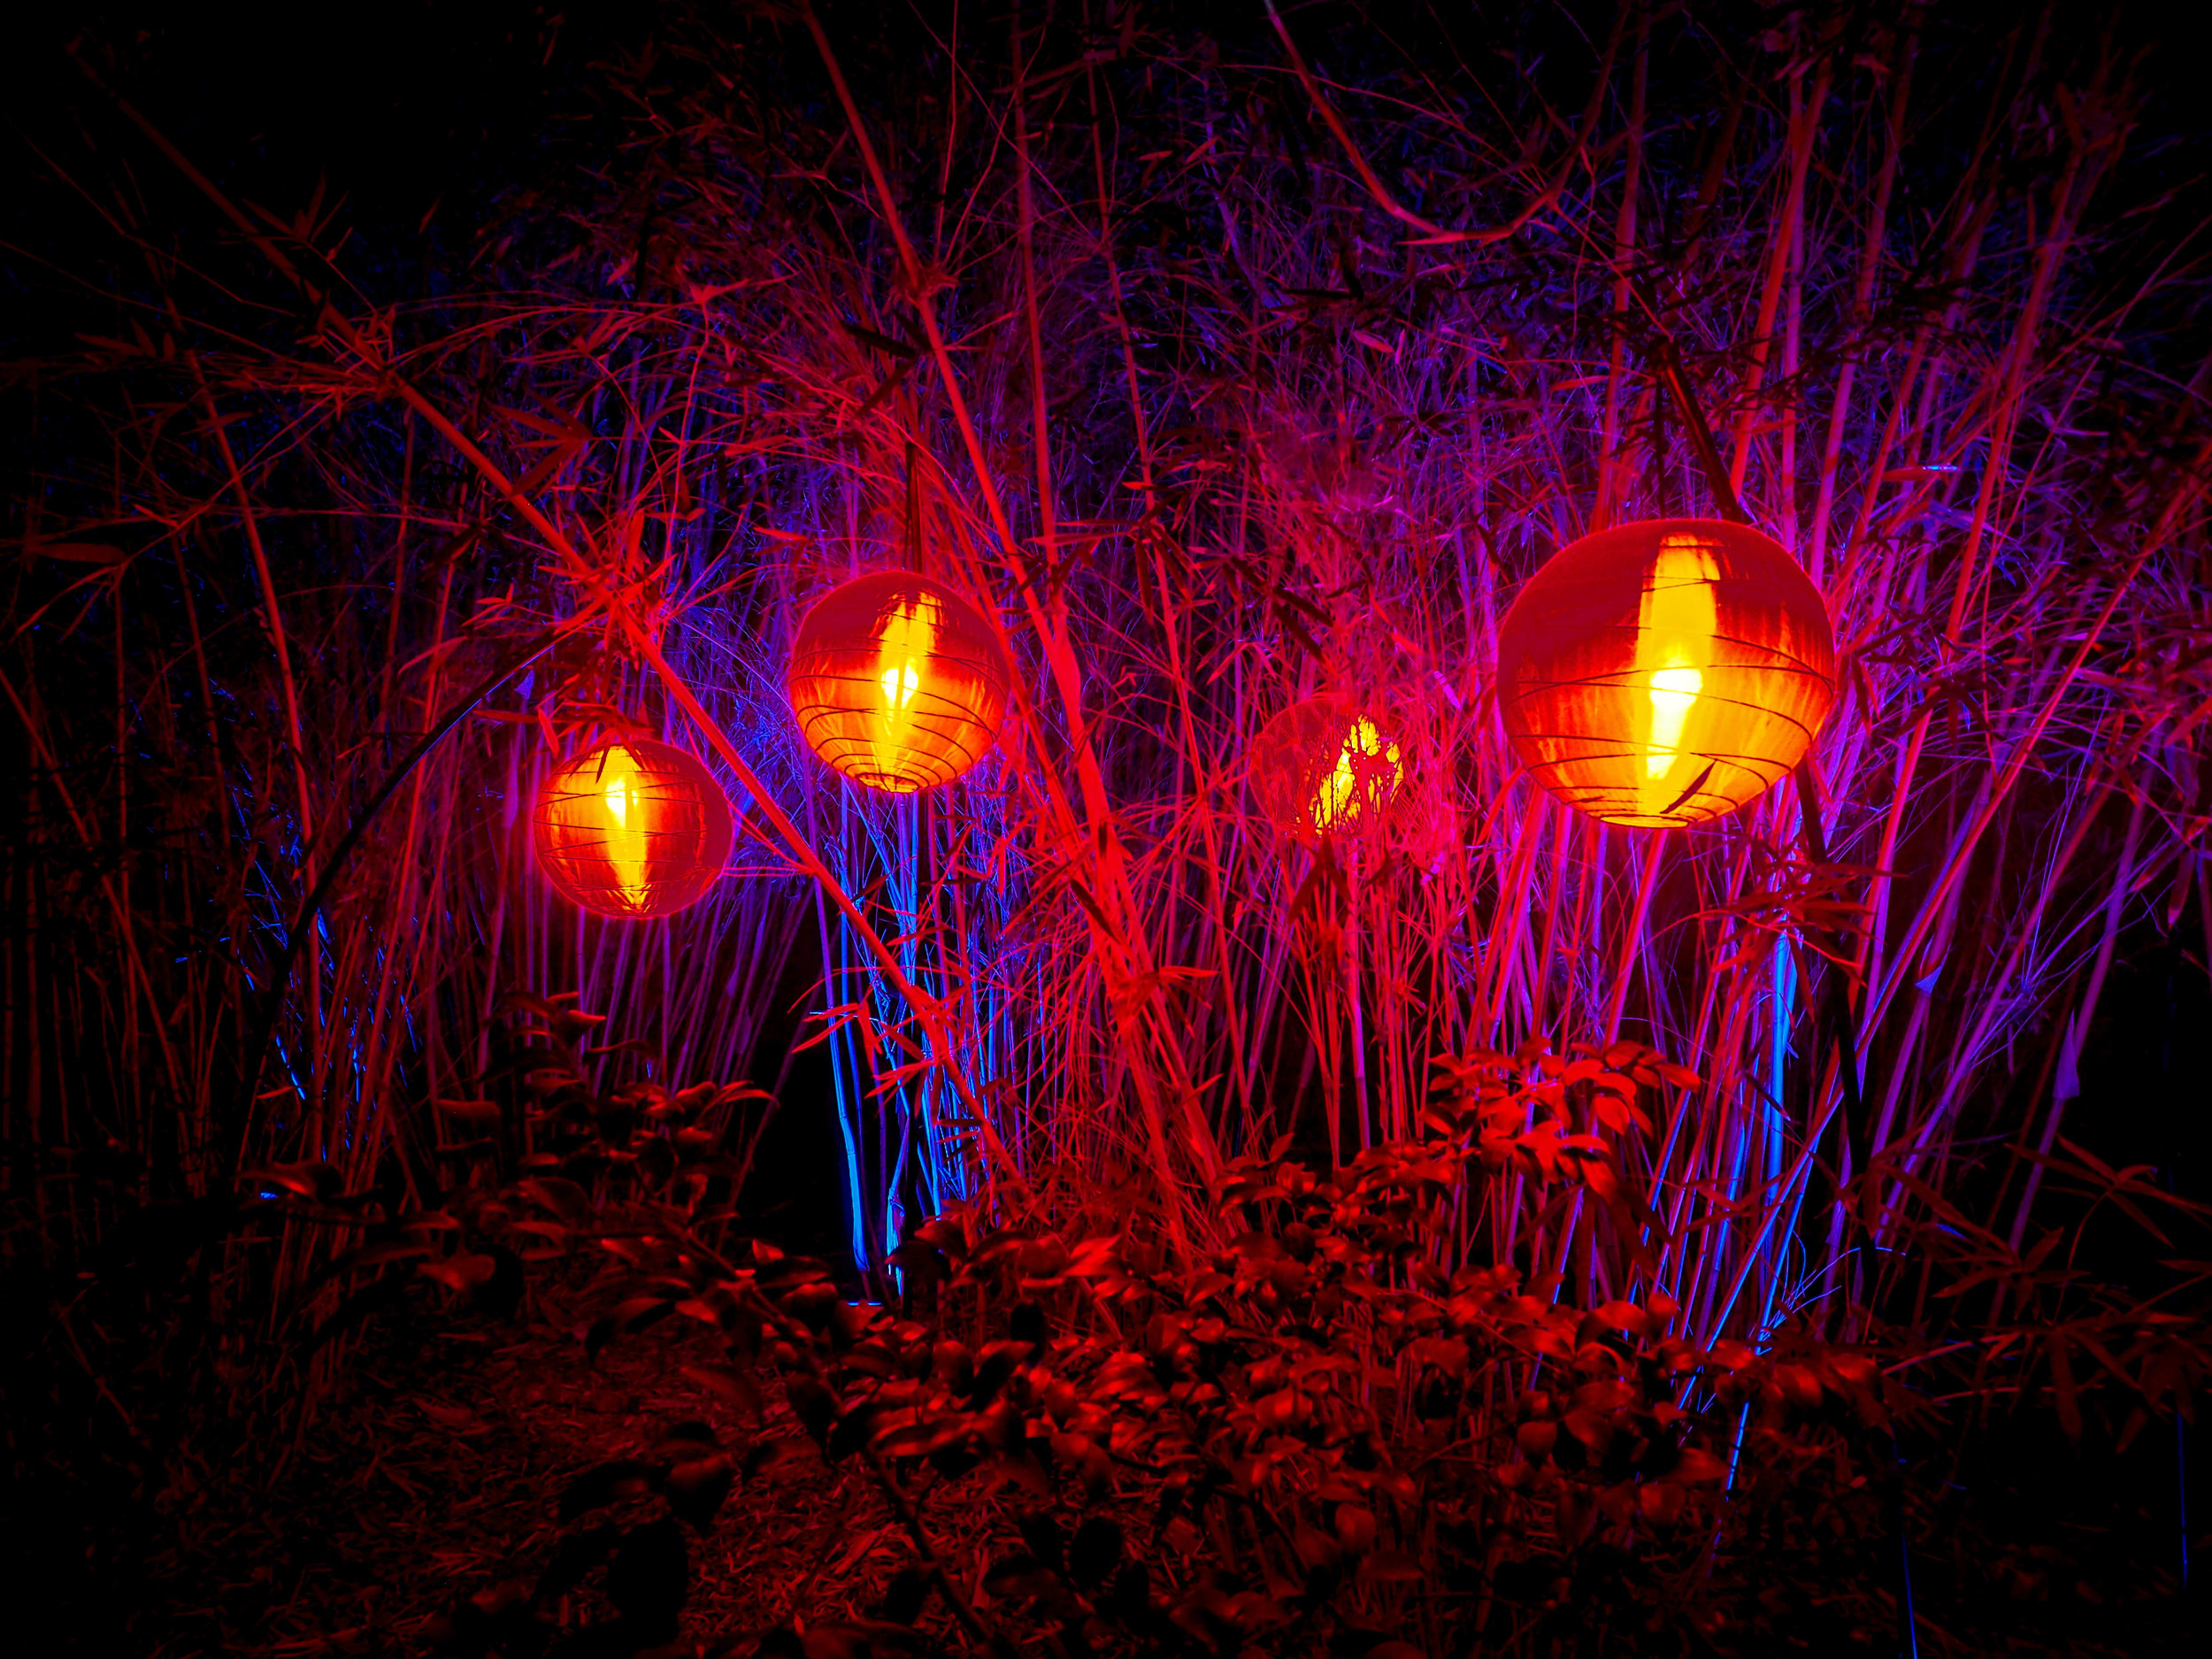 Illuminated Lanterns